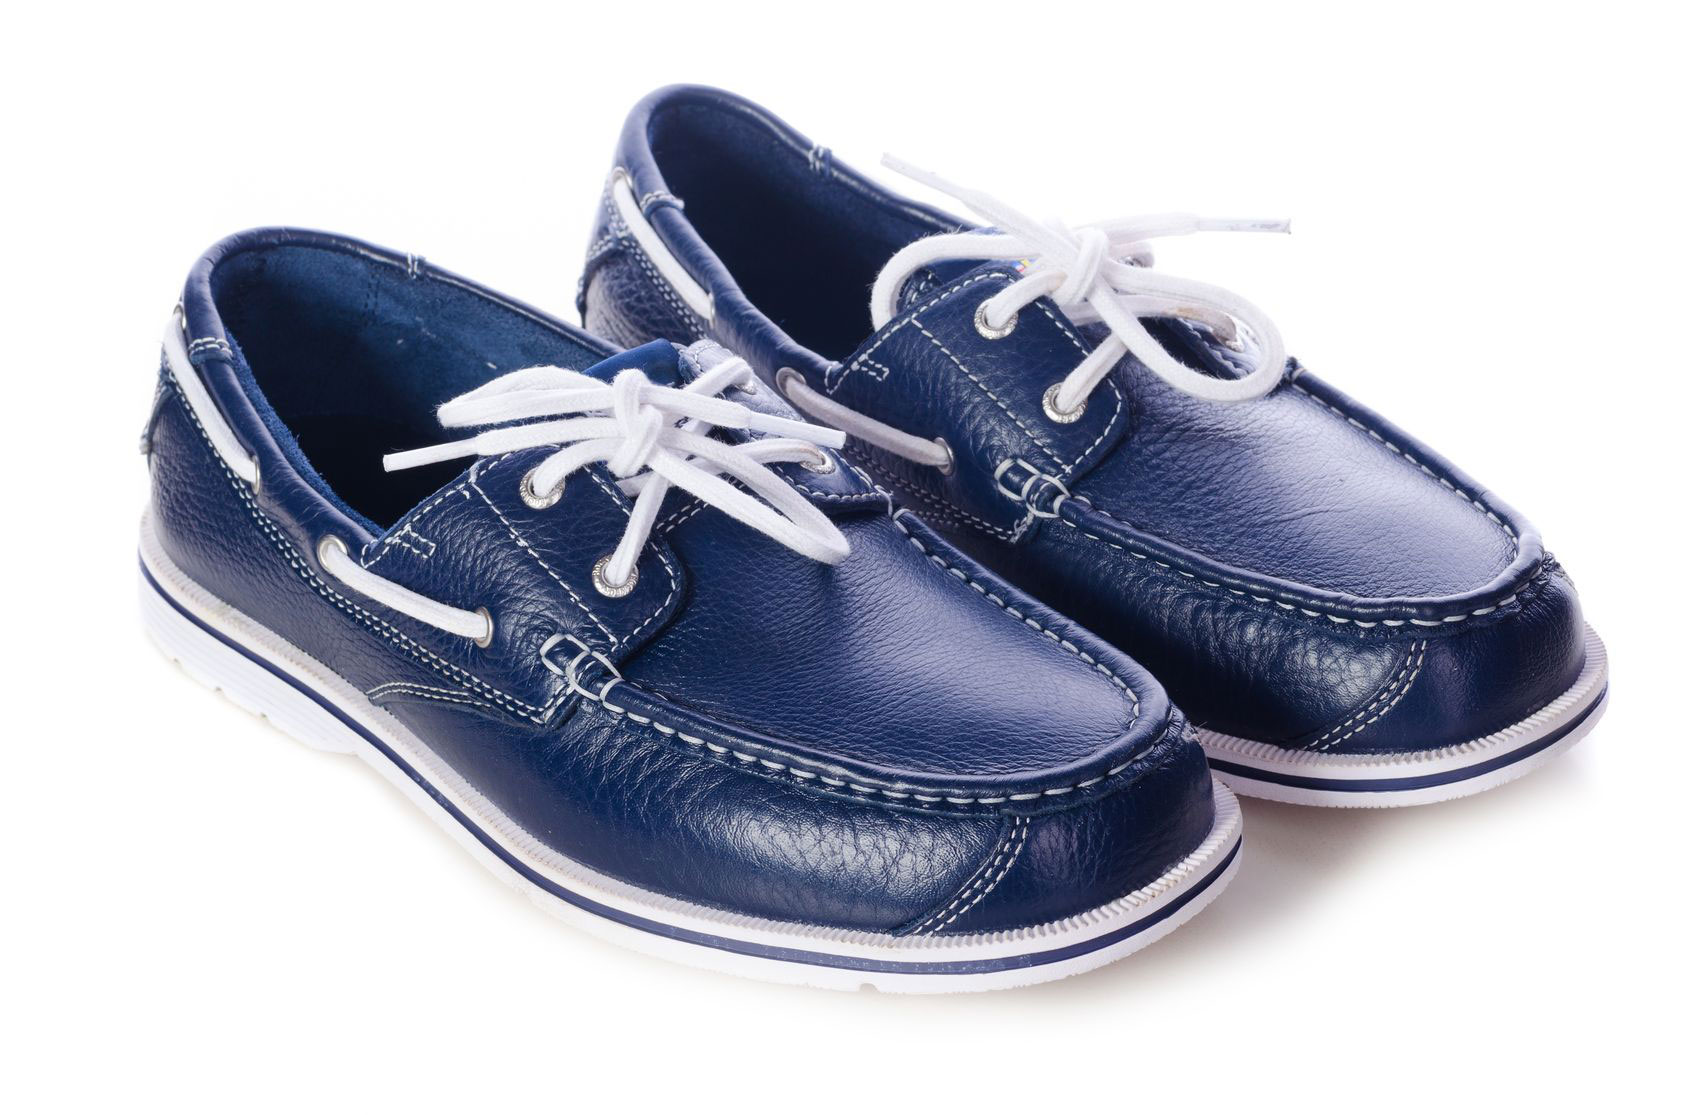 C.S. GEAR Men's Casual Blue Leather Shoes